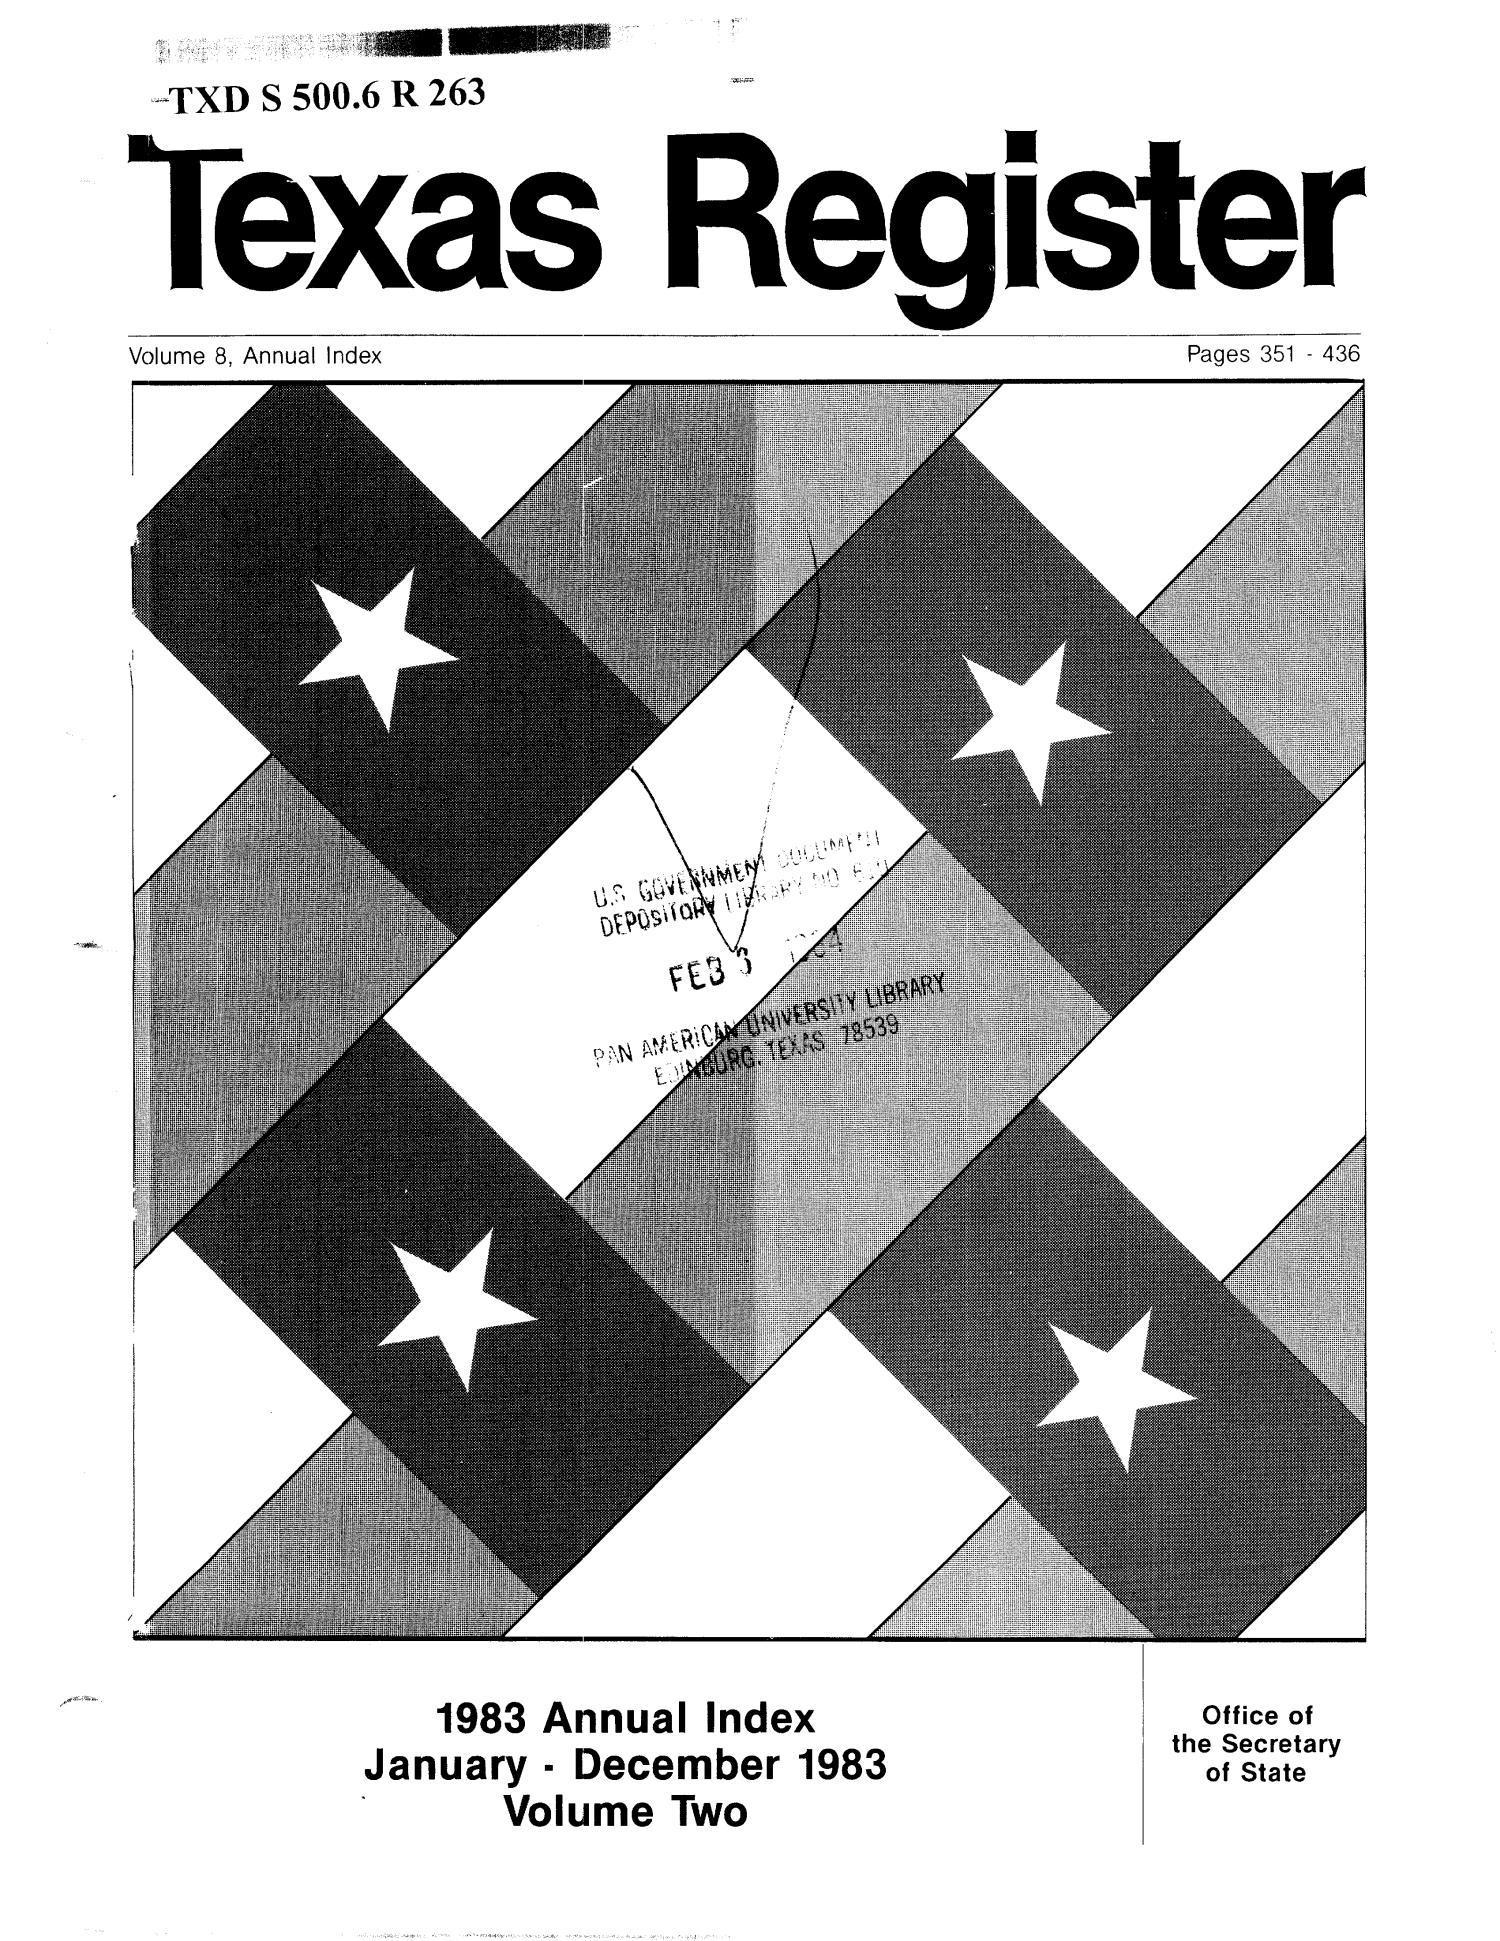 Texas Register, Volume 8, Annual Index II, Pages 351-436, February 3, 1983                                                                                                      Title Page